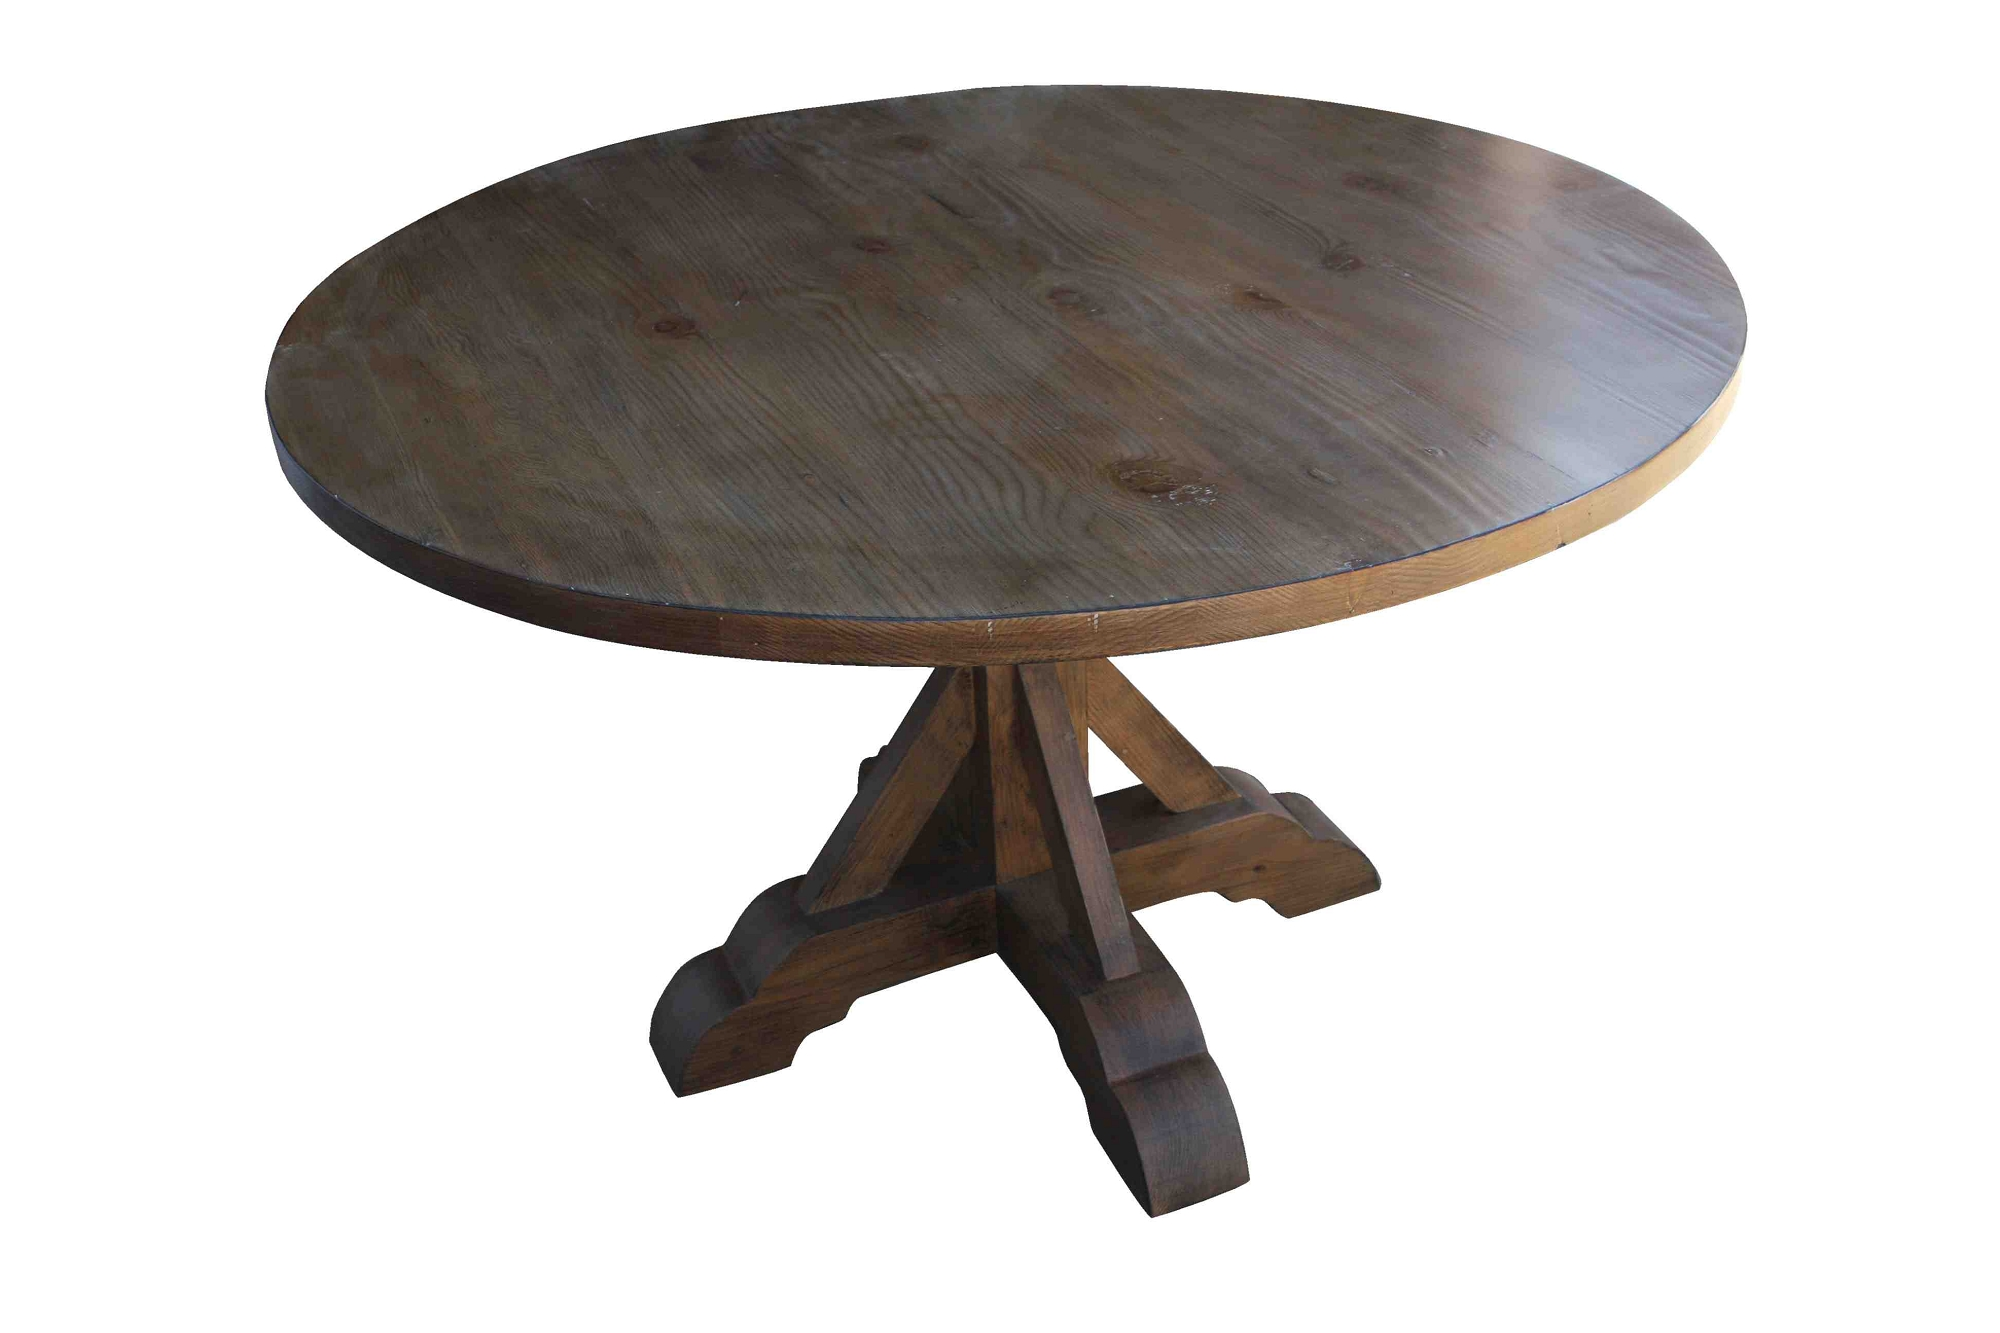 2000x1333px 8 Pretty Round Dining Table Reclaimed Wood Picture in Furniture